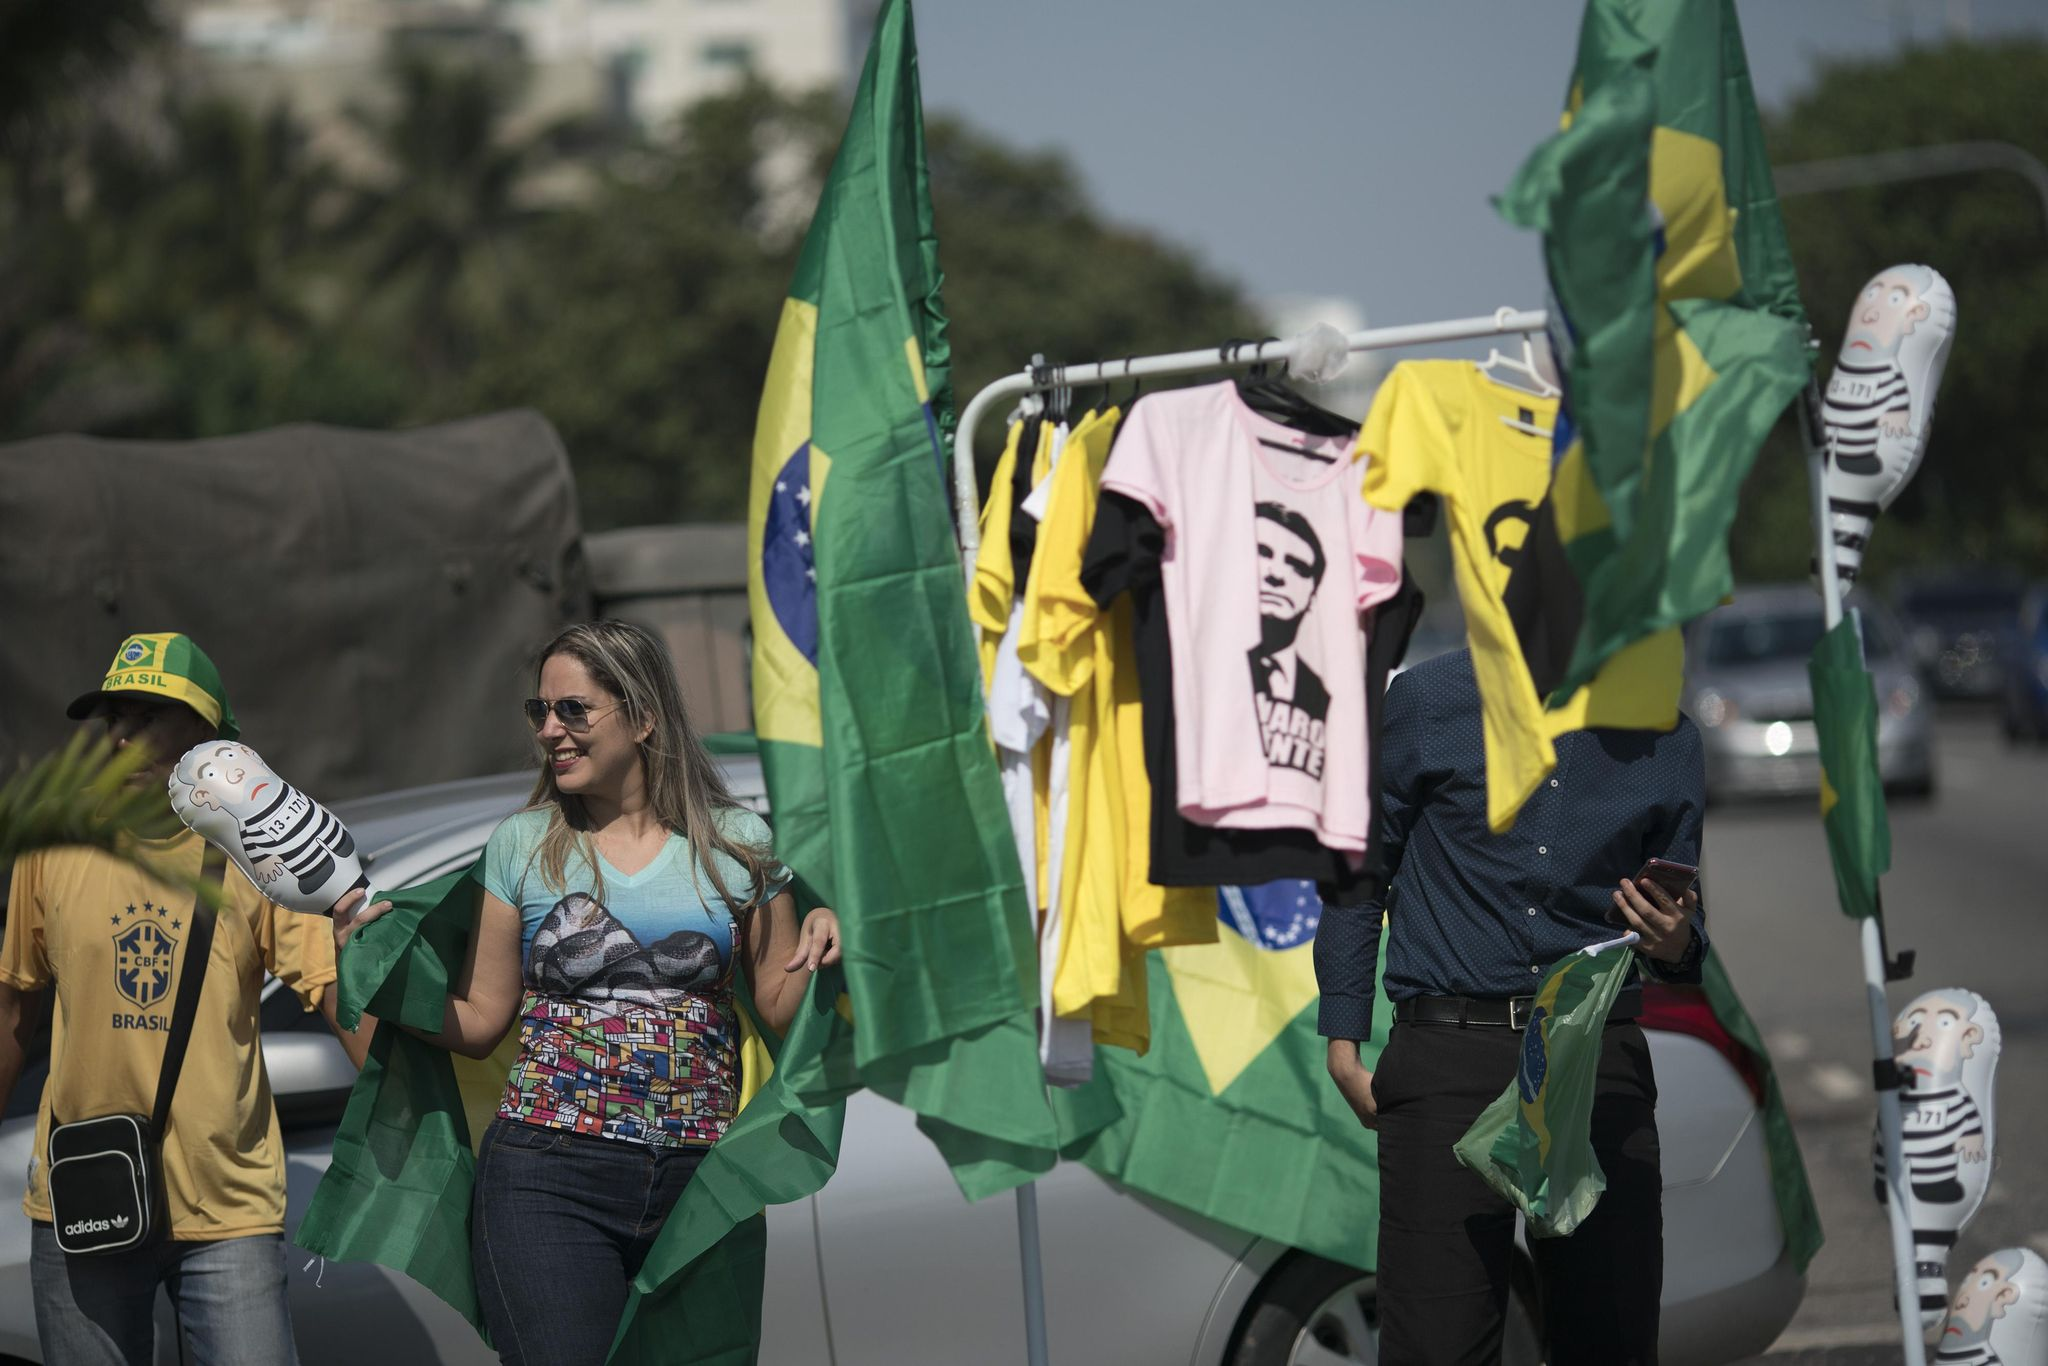 Amid violence, Brazil presidential candidates call for calm - Washington Times